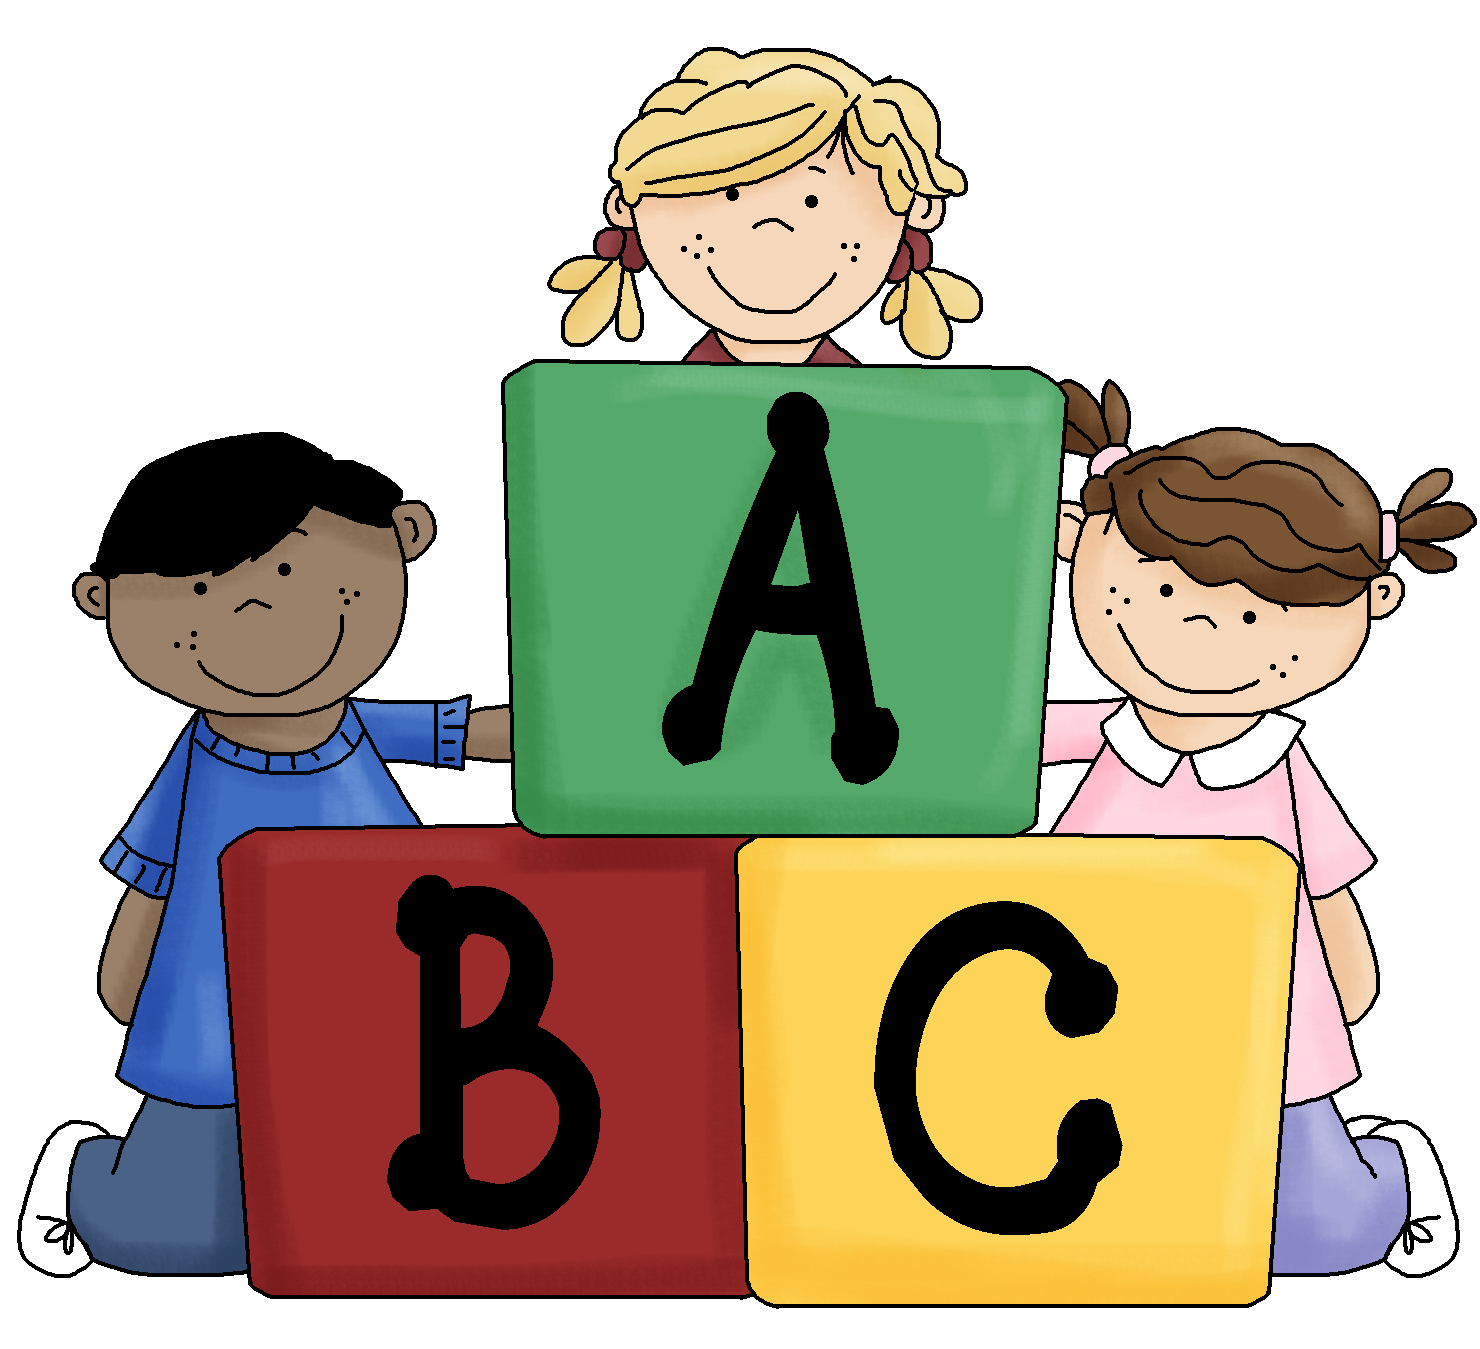 abc blocks clipart at getdrawings com free for personal use abc rh getdrawings com abc clip art for kids abc clipart letters